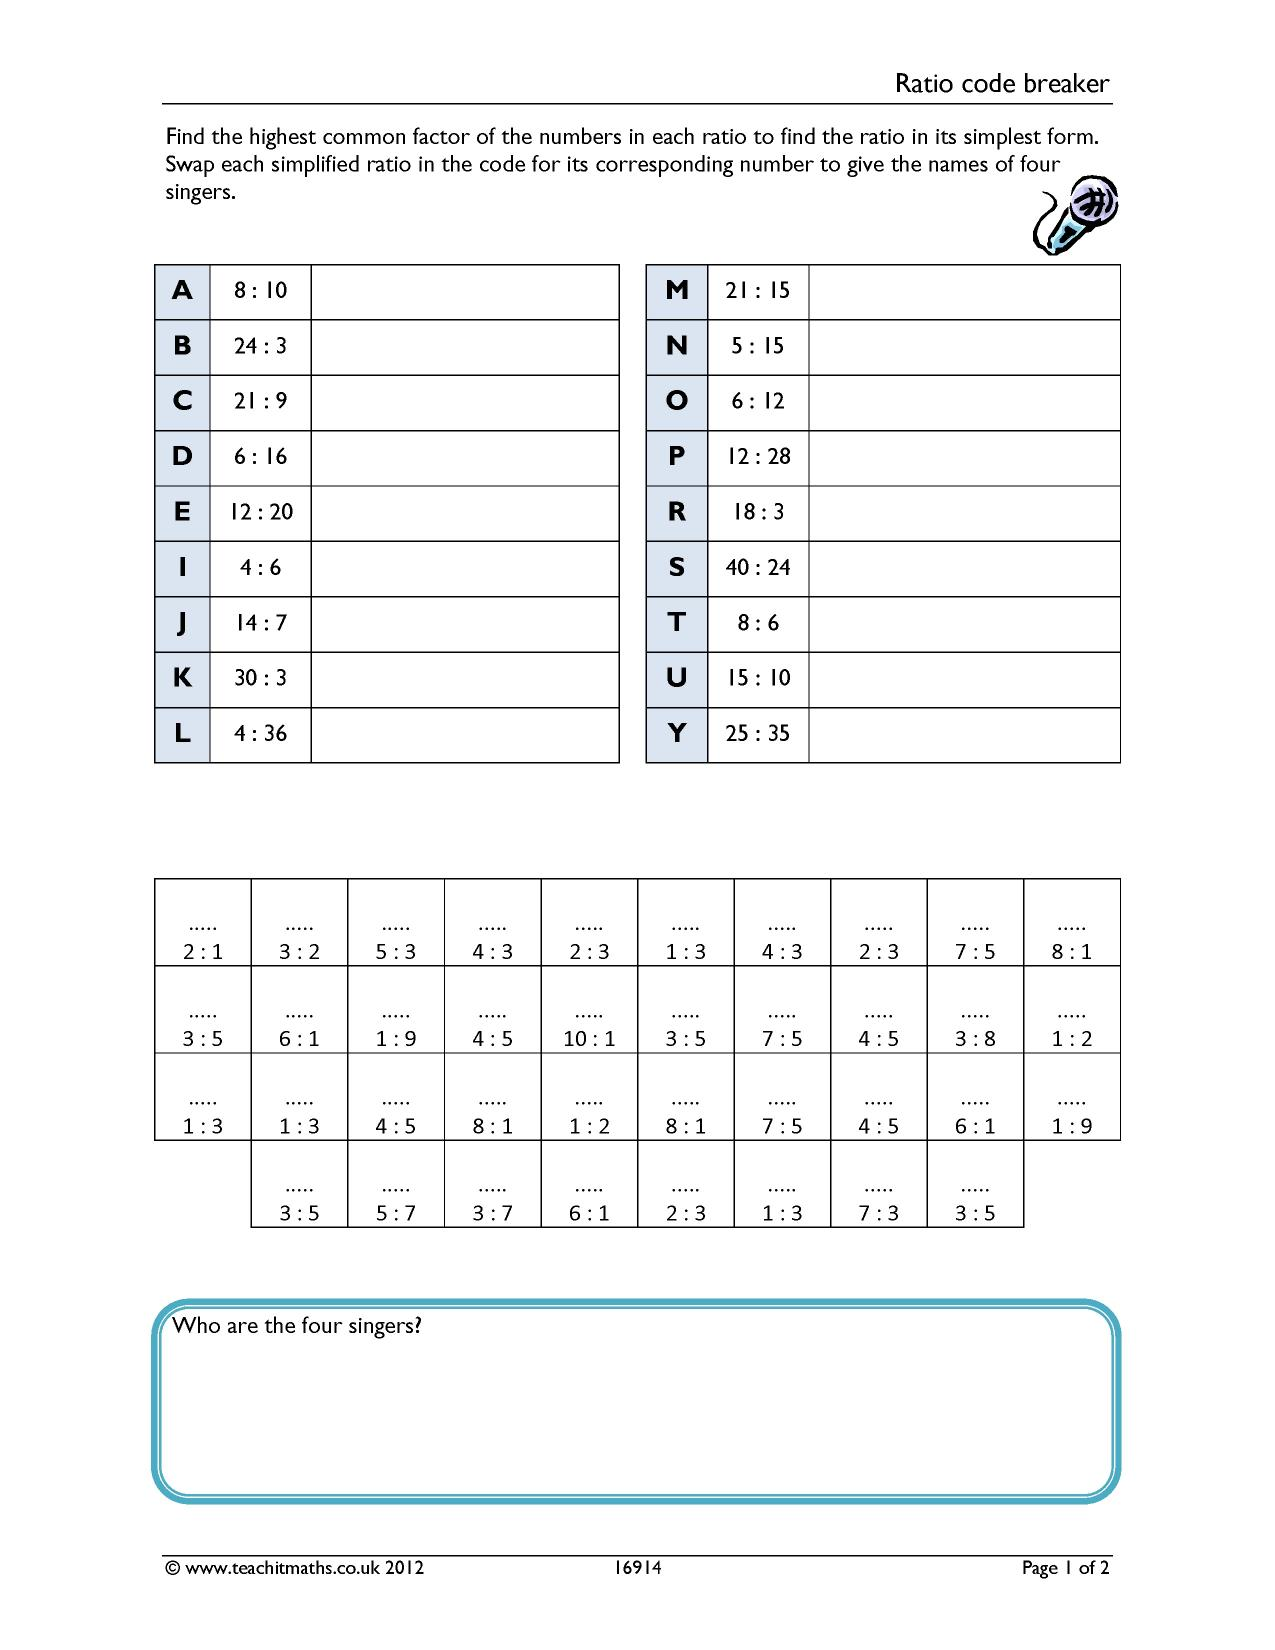 KS3 Maths Worksheets with Answers   Cazoom Maths Worksheets besides Ratio Worksheets 17 Unique 21 Best Ratios and Proportions Images On moreover  further Using direct proportion likewise Ratios  rates  proportions   Pre alge   Math   Khan Academy further Missing Angles Worksheet Ks3 Tes Best Of Ks3 Maths Worksheets Ratio together with Ratio and Proportion for KS3 Maths   Teachwire Teaching Resource likewise Ratio Worksheet for KS3 Maths   Teachwire Teaching Resource further Percentages Worksheets 4 Maths Fractions Decimals And Lesson Ks3 further Free Ks3 Maths Worksheets And Collections Of Printable Math Fraction also KS3   Ratio and proportion   Teachit Maths furthermore Ratio Proportion Worksheets   Oaklandeffect as well  moreover KS3   Ratio and proportion   Teachit Maths moreover Ratio and Proportion Worksheet Pdf ly Ks3 Ratio and Proportion besides Ratio   Proportion  Homework Worksheets by mrbuckton4maths. on ratio and proportion ks3 worksheet